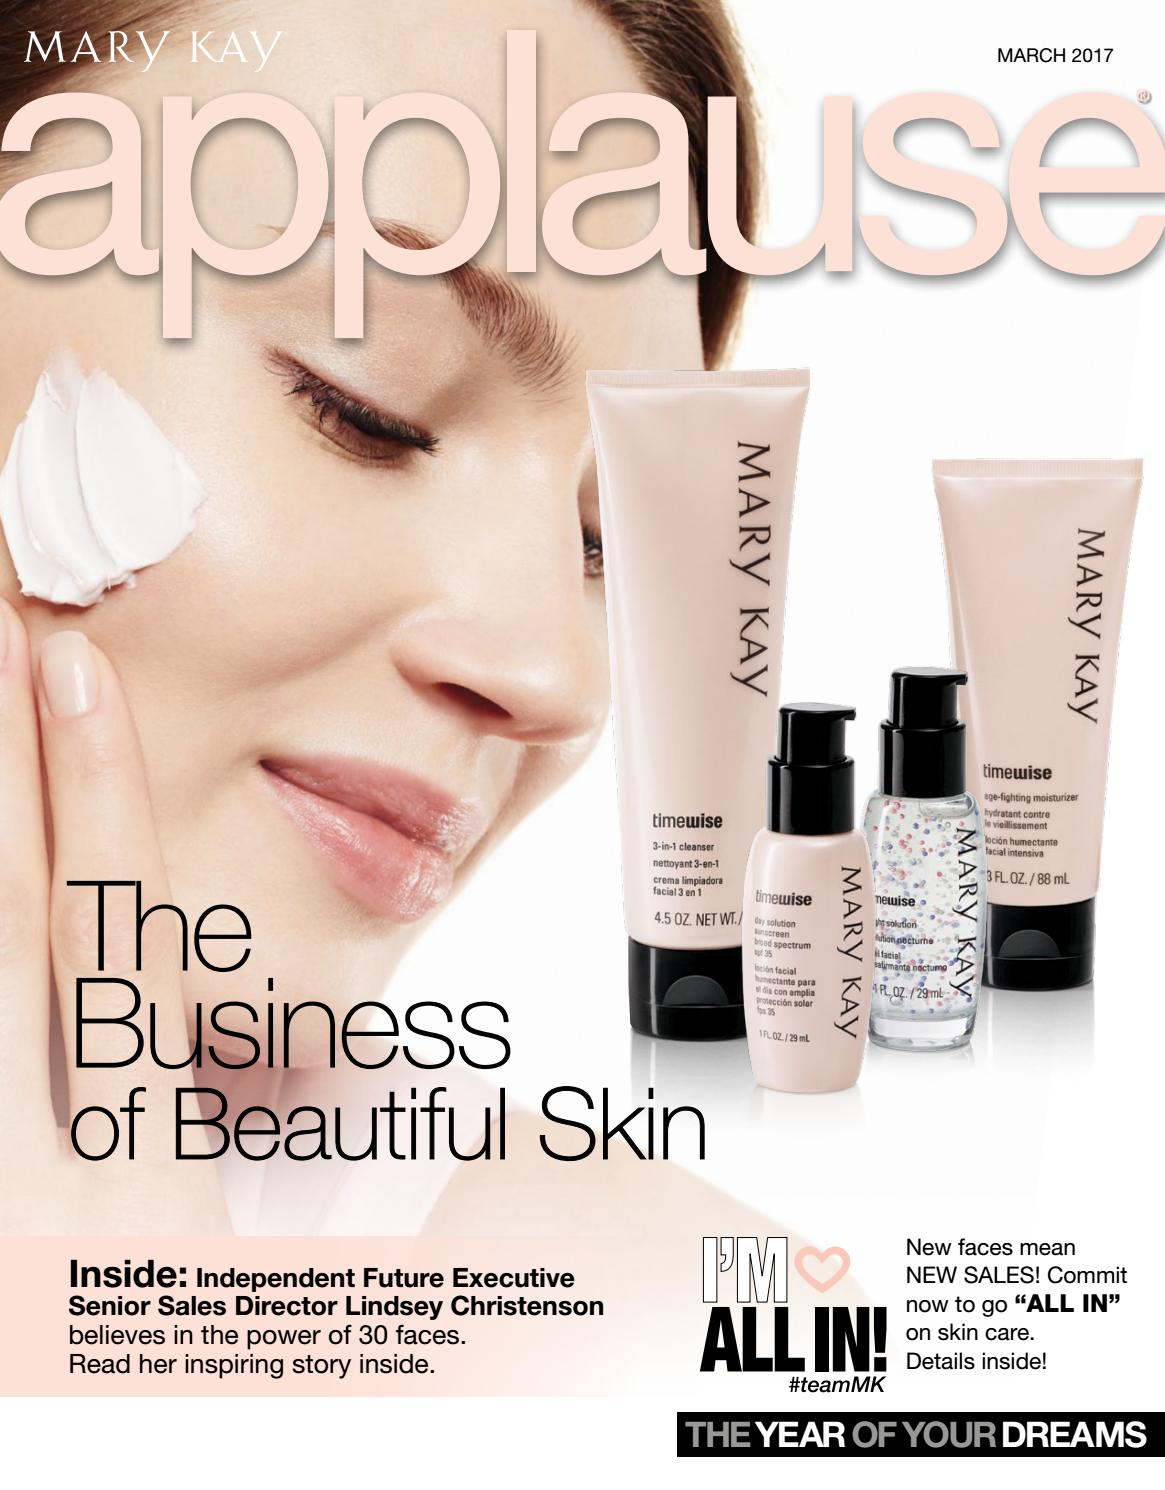 Mary kay online agreement on intouch - Mary Kay Online Agreement On Intouch 3